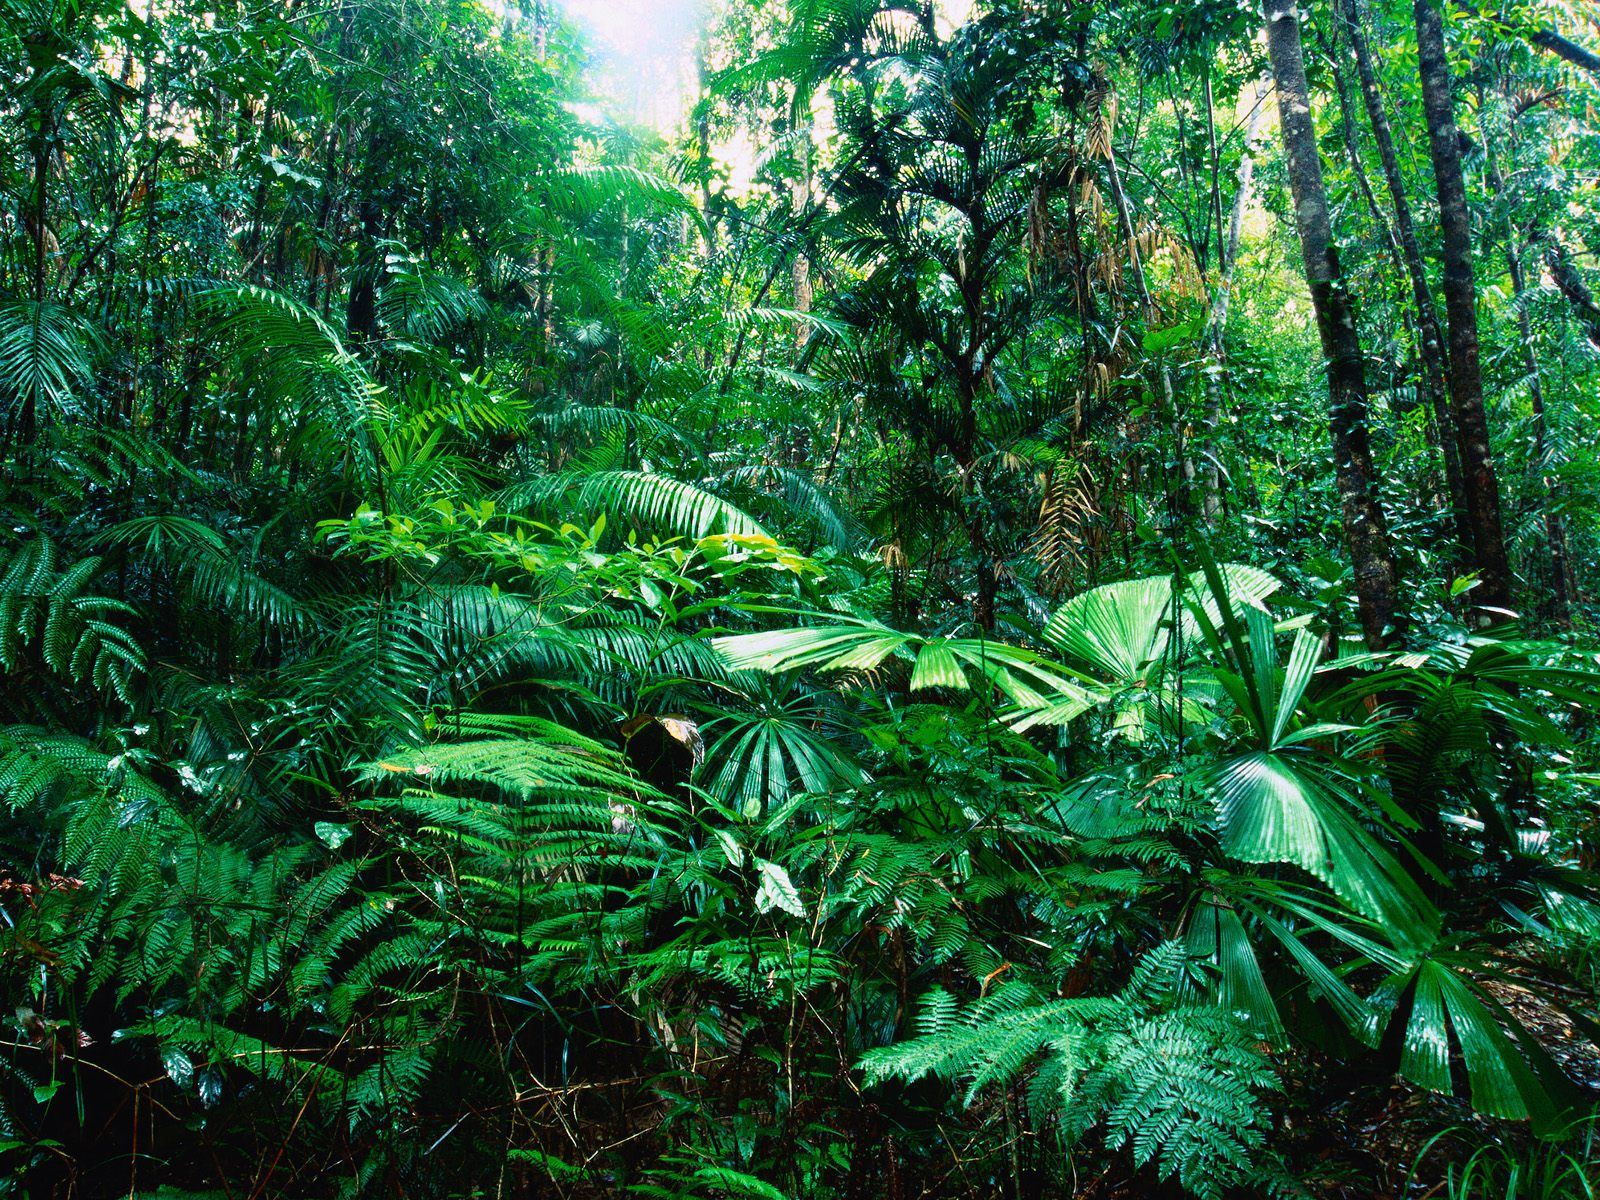 Tropical Rainforests - Green Plants On The Earth